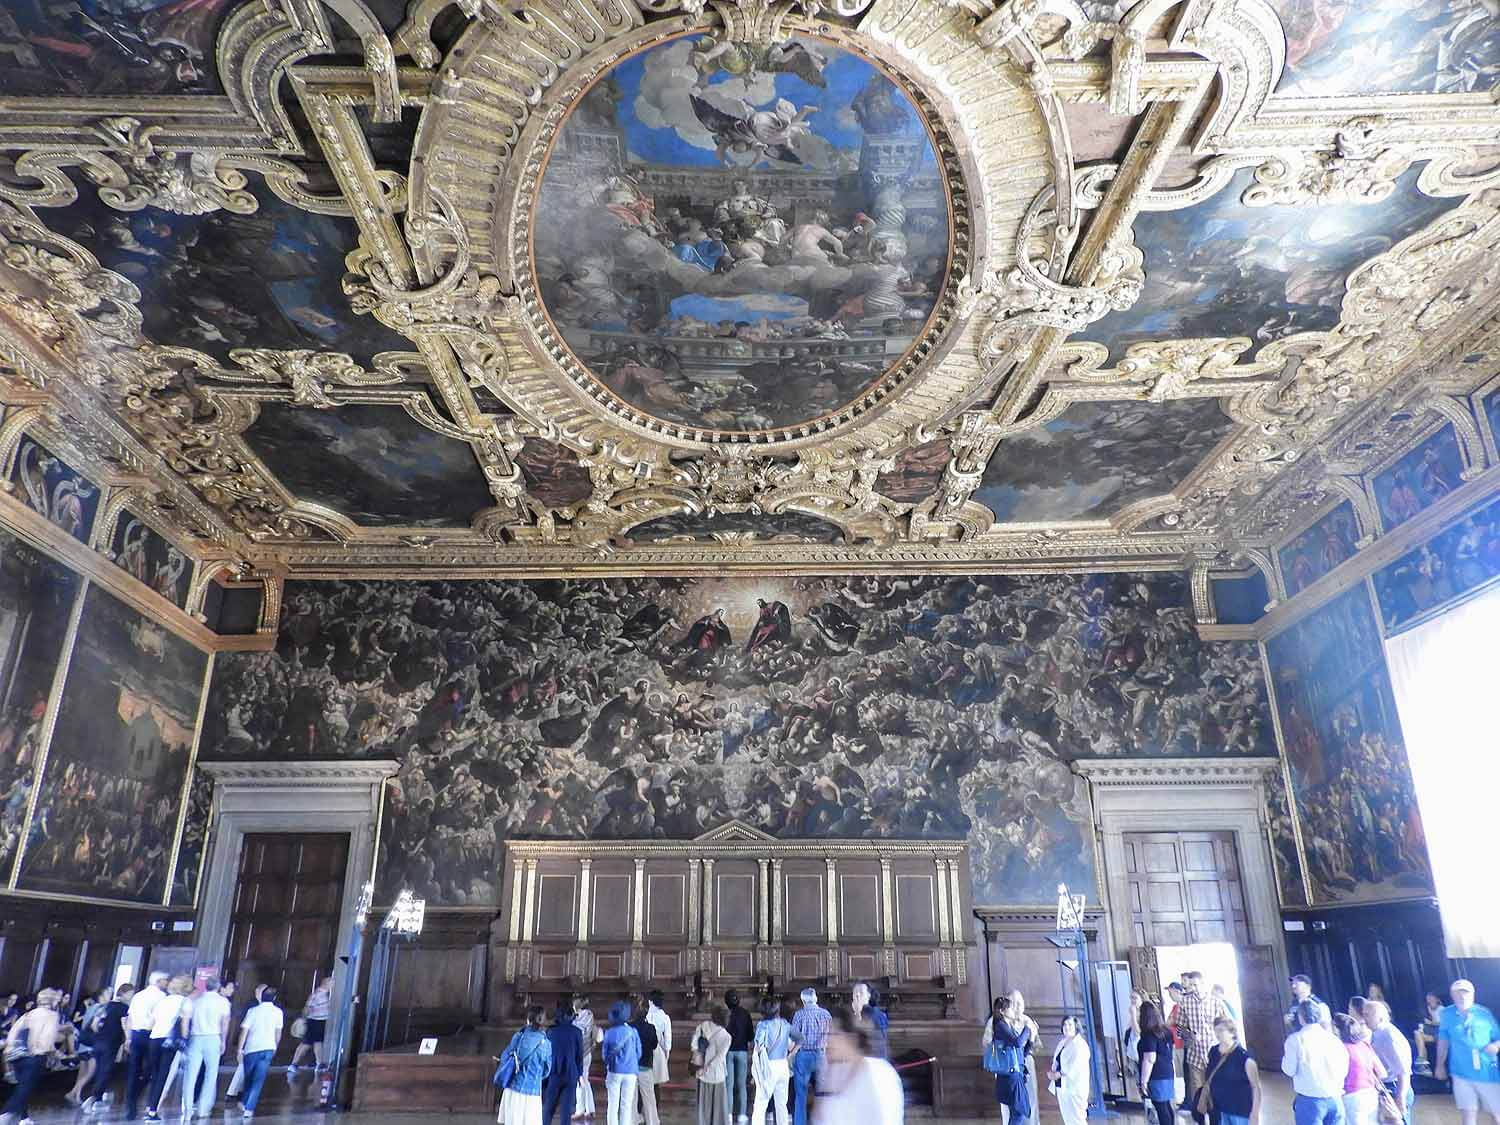 italy-italia-venice-palazzo-ducale-largest-oil-painting-world-ceiling-grand-hall.jpg